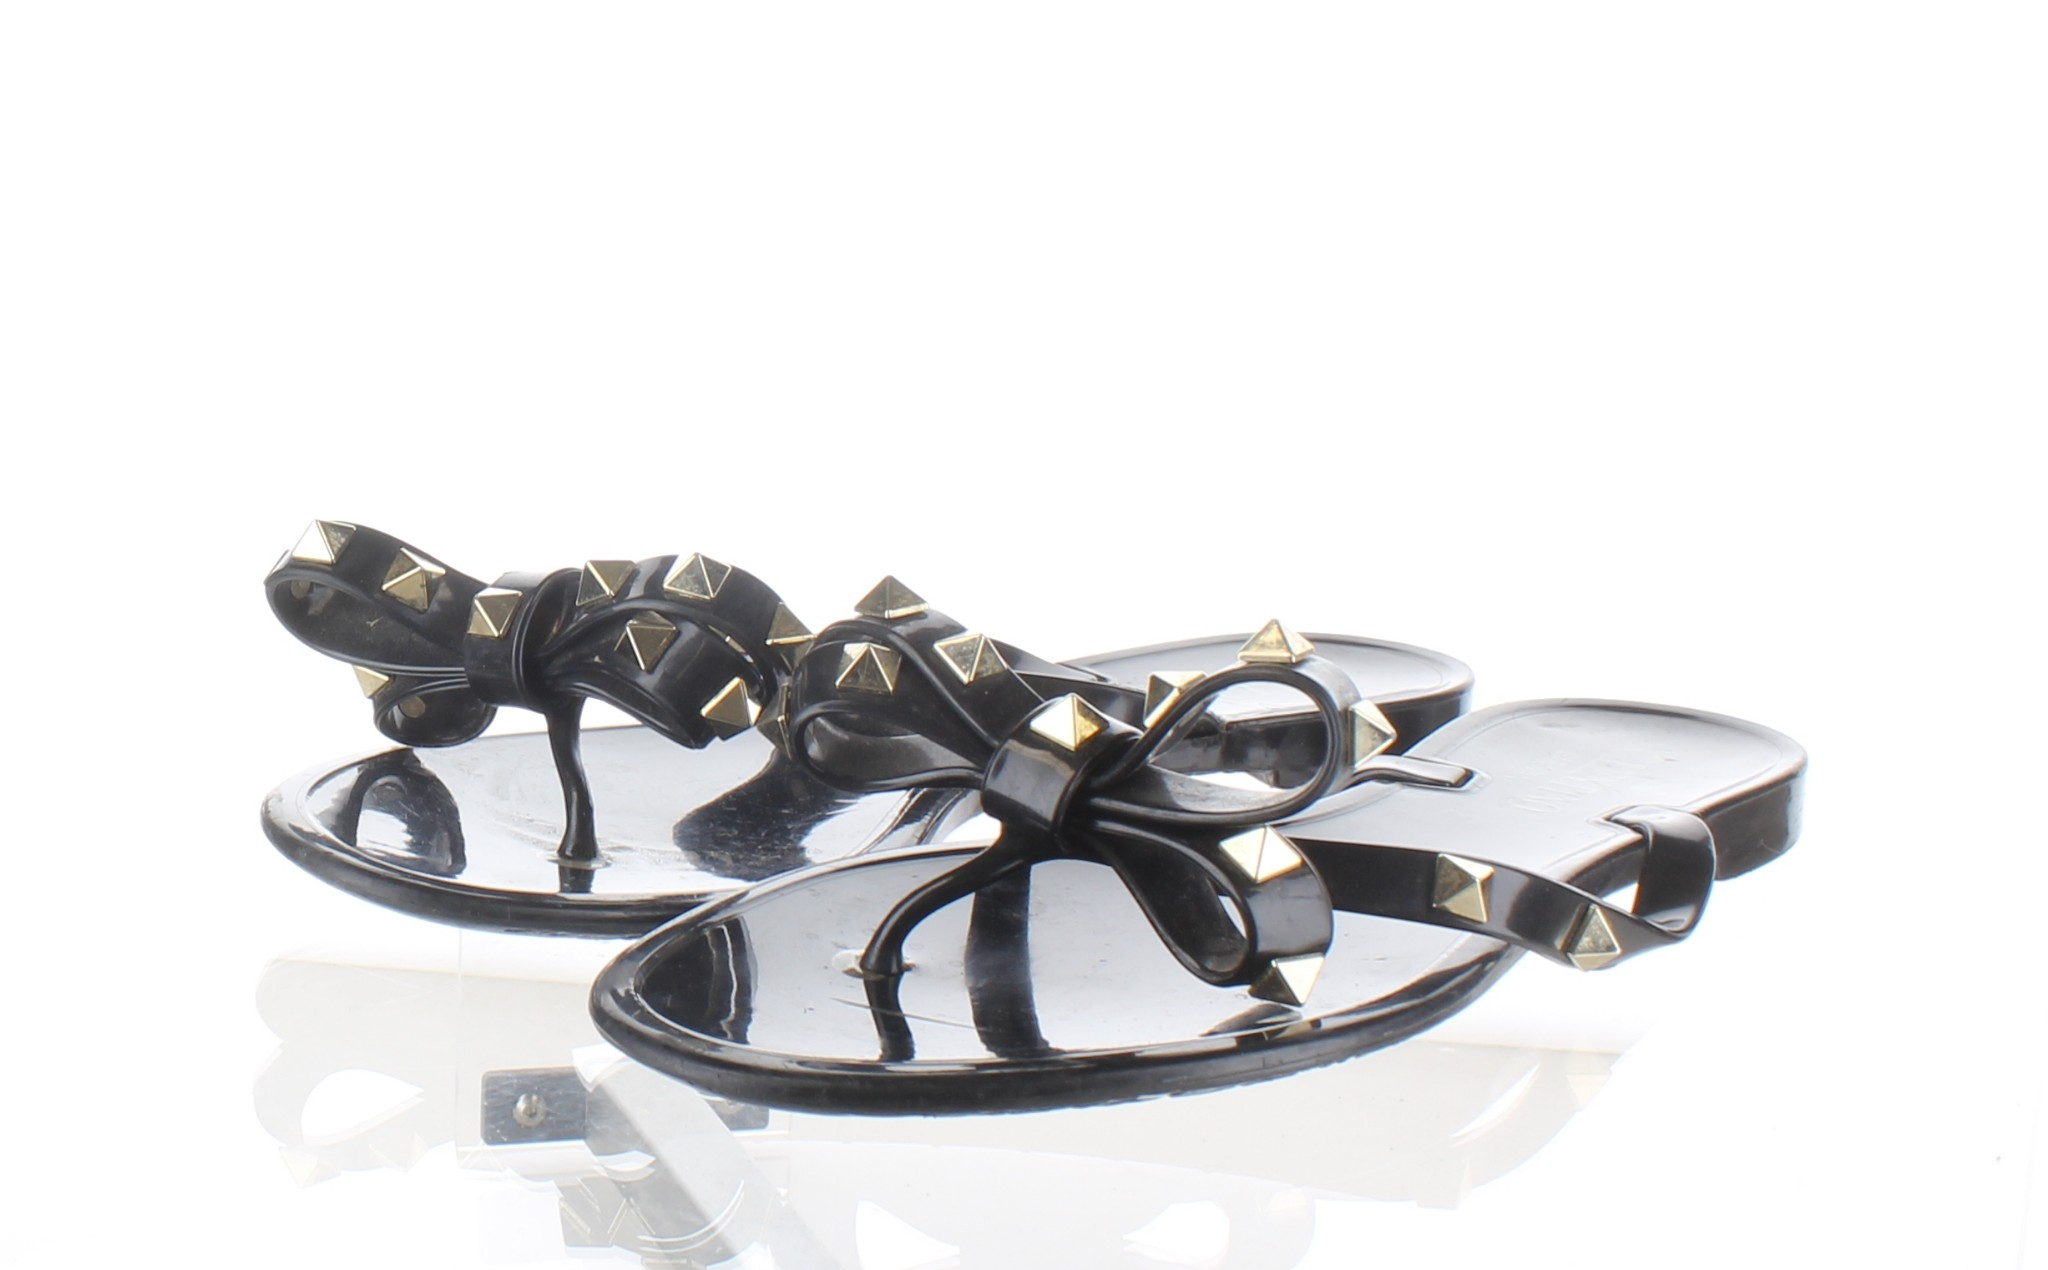 c80775bda1f Details about 1133 Valentino Garavani Rockstud Bow Black Jelly Thong Sandals